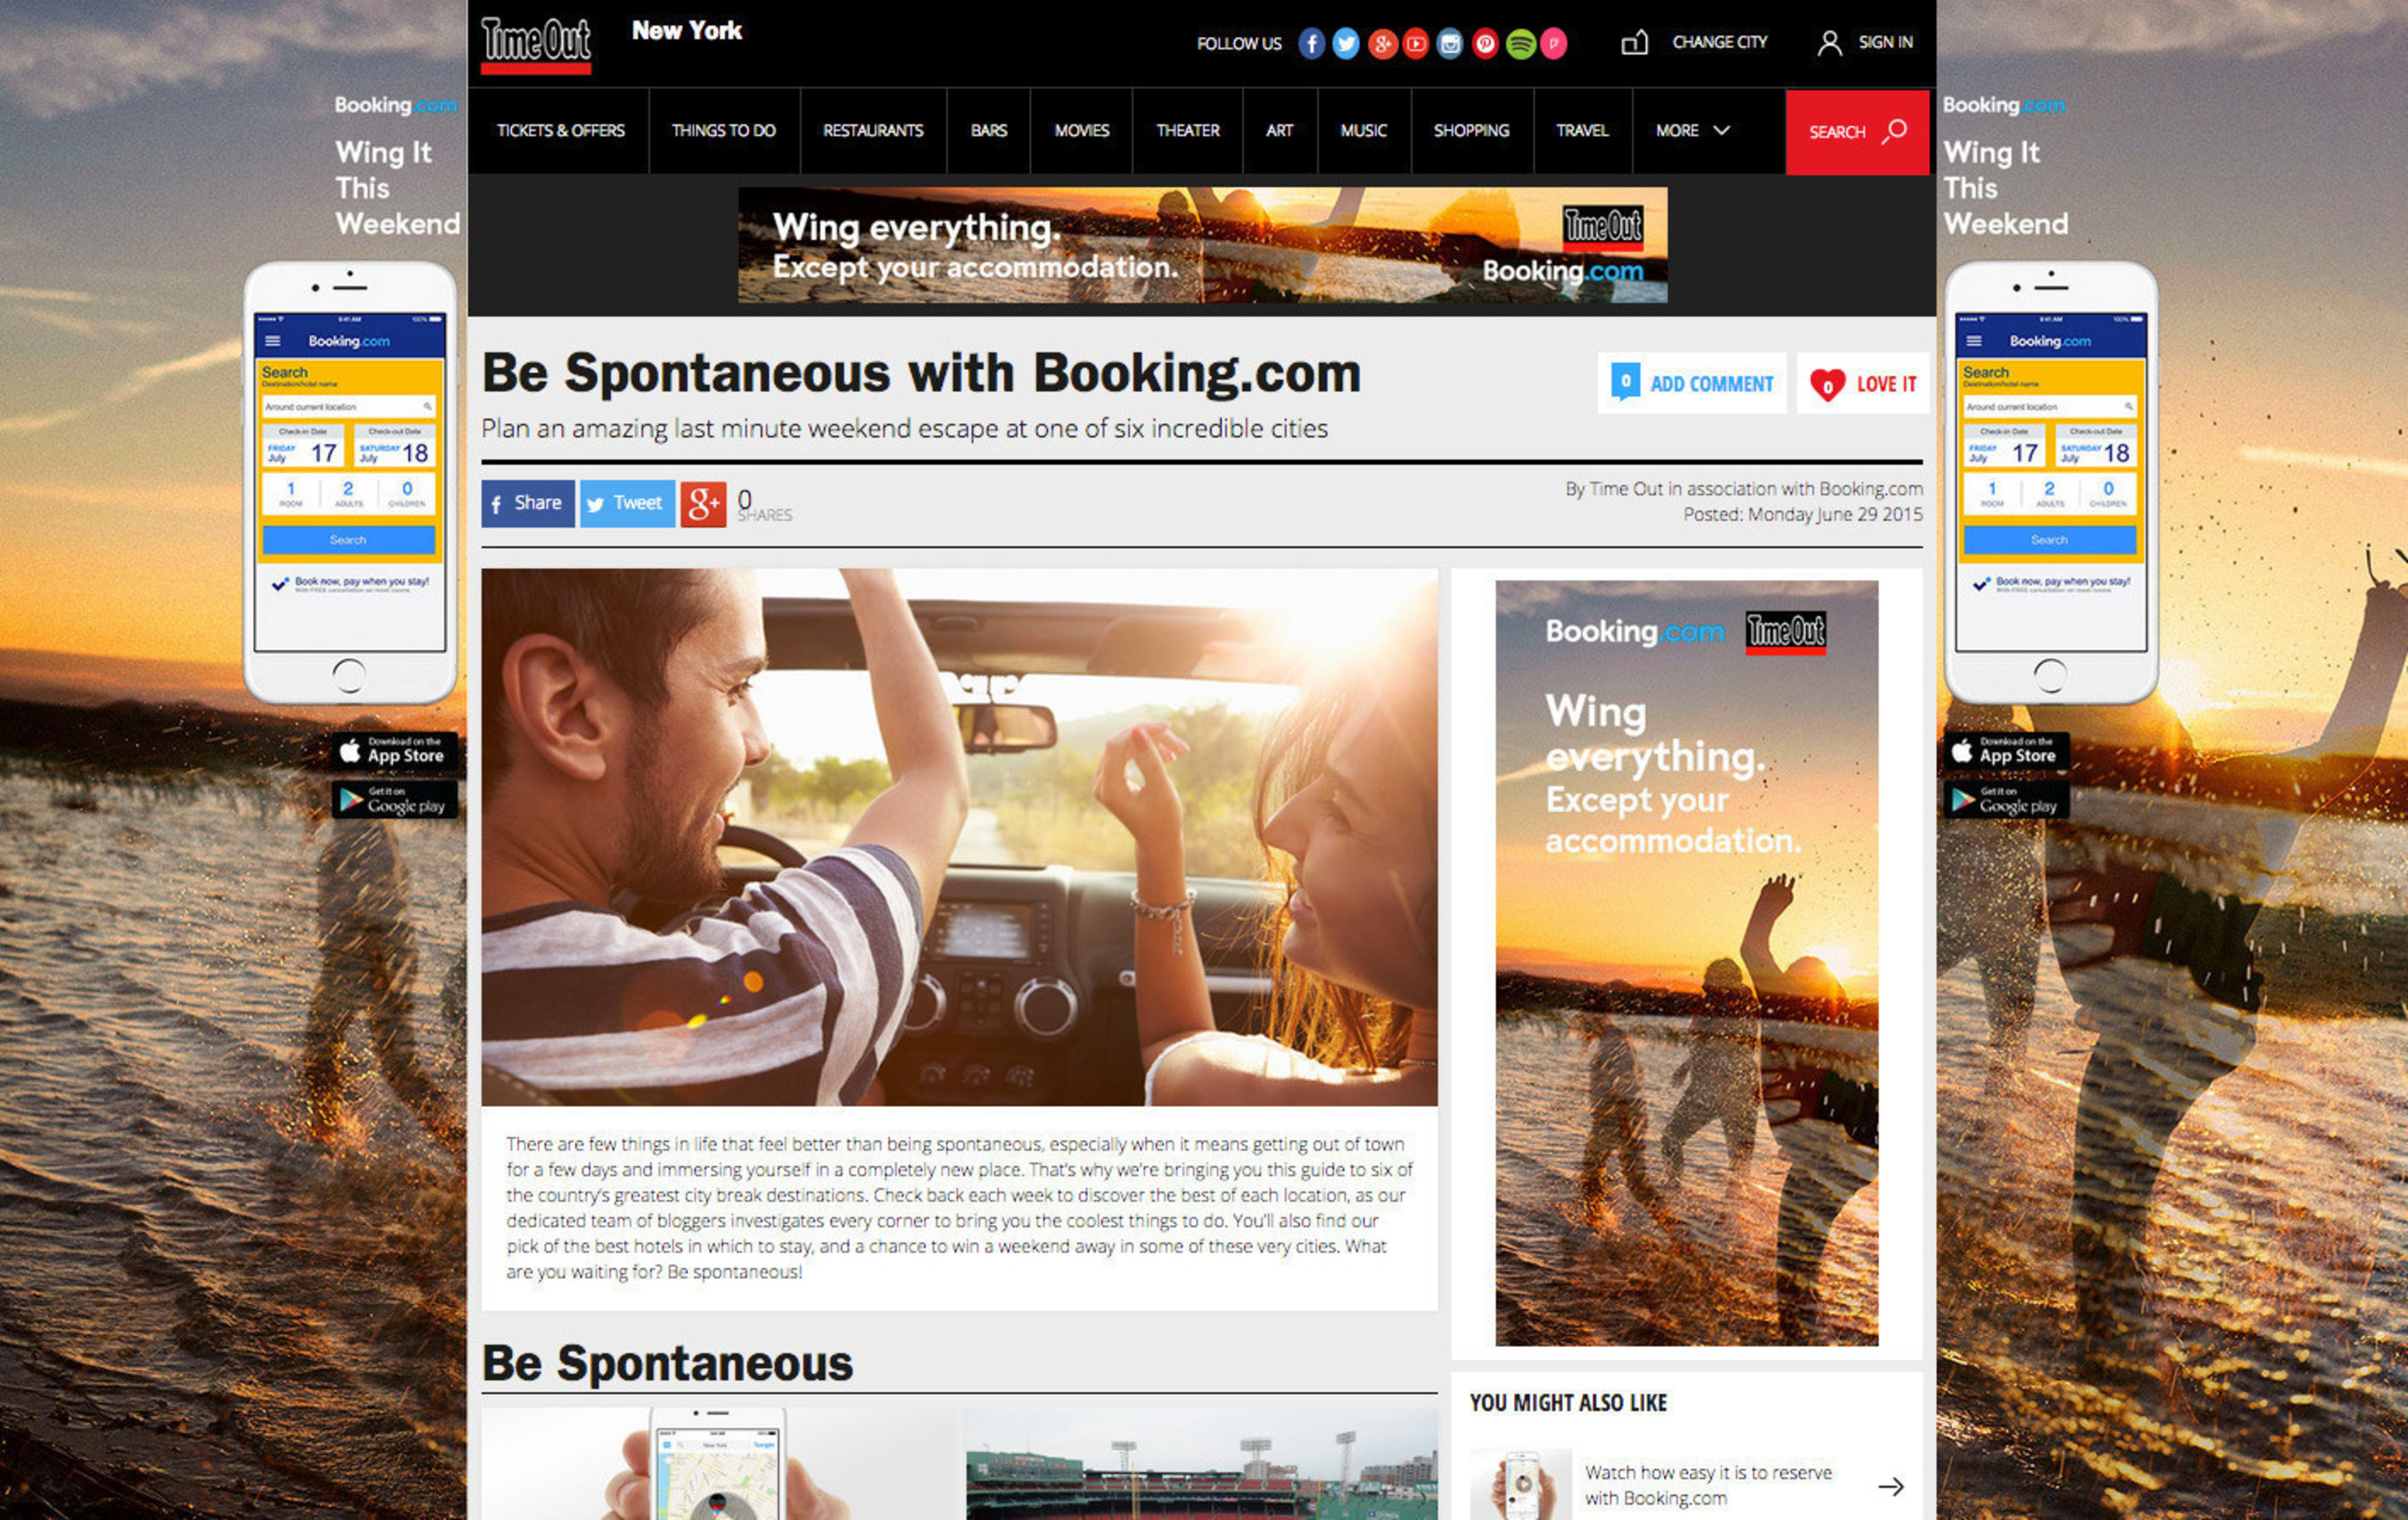 Booking.com Partners with Time Out to Inspire Spontaneous Travelers to Explore New Cities